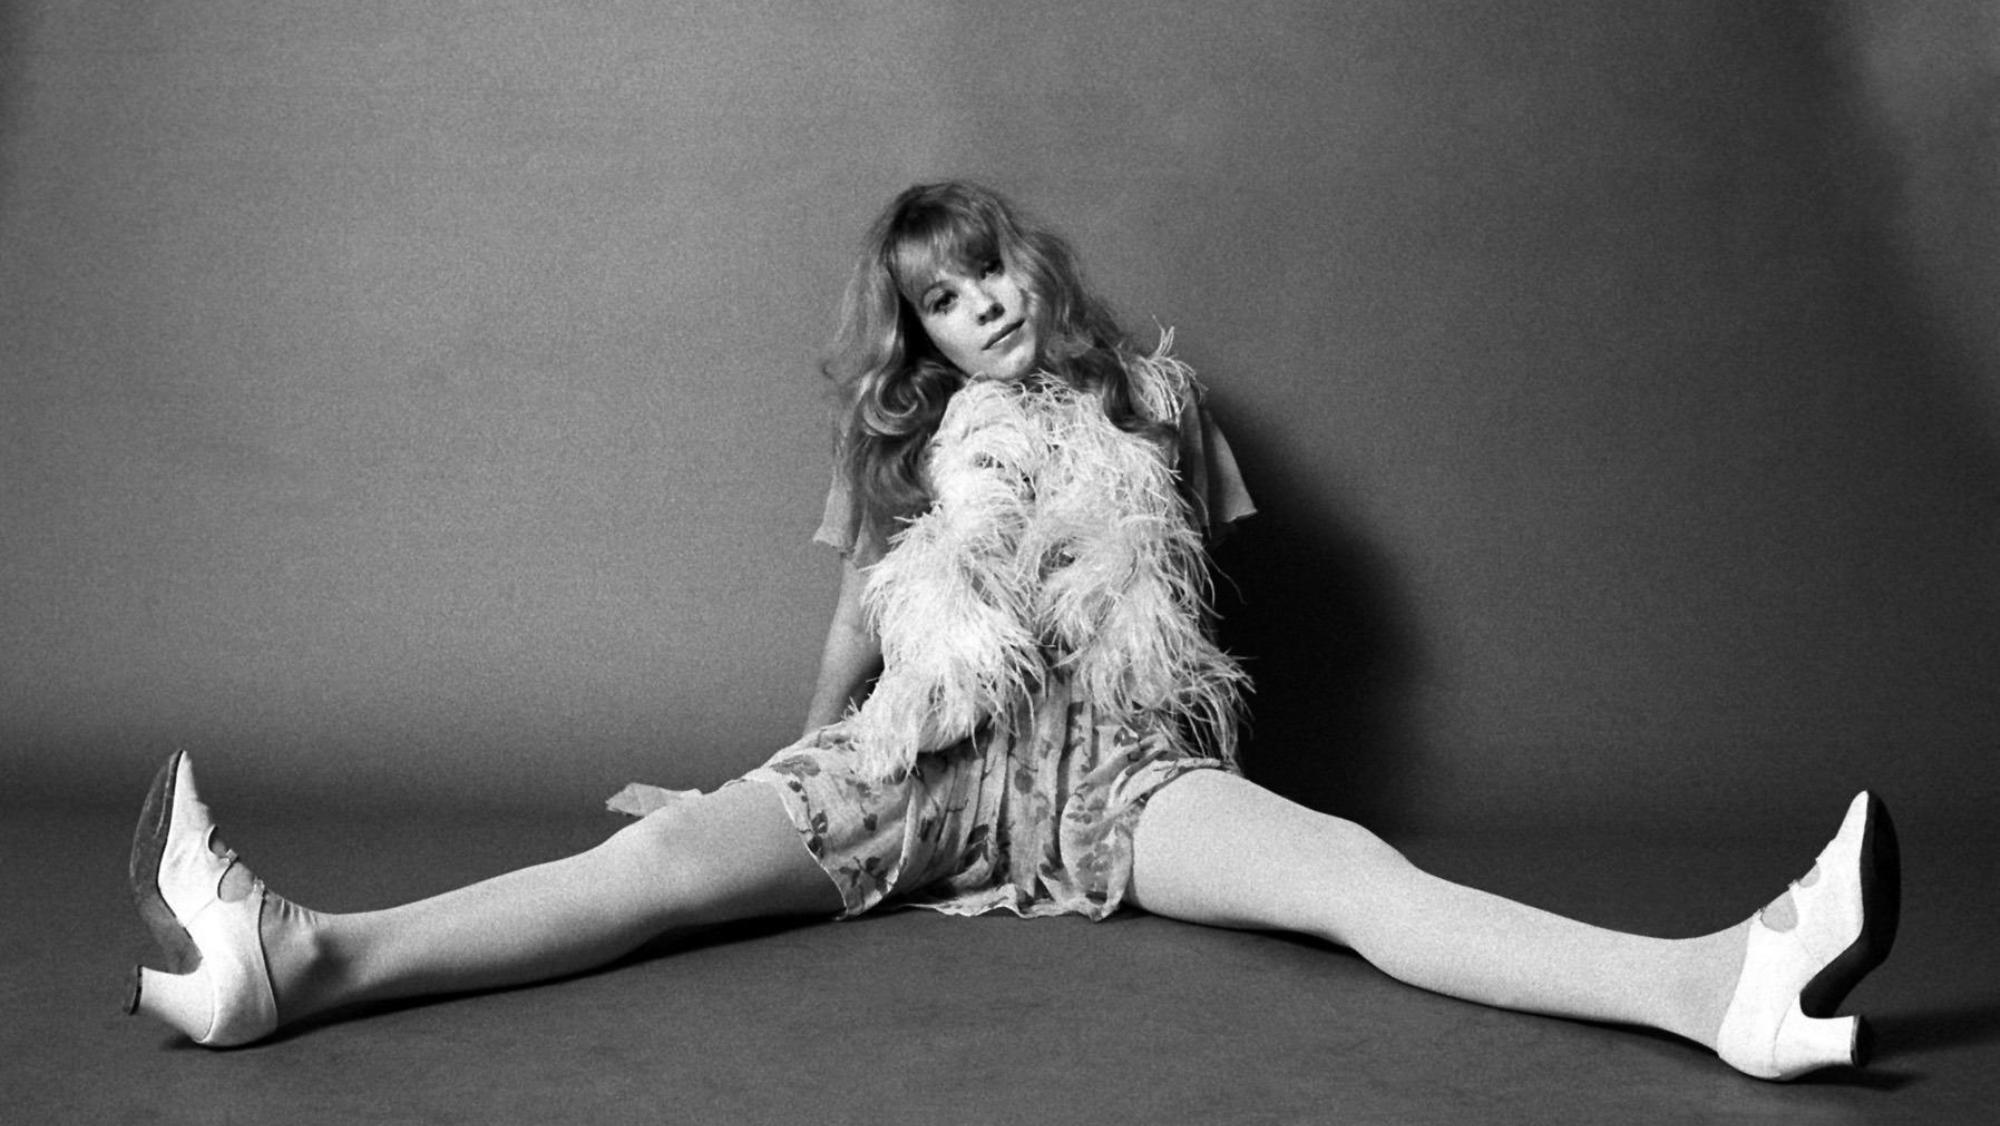 Almost Famous: 'Rolling Stone's 60s portraits of the original groupies https://t.co/nWIDf4CSiA https://t.co/K1DpwI78Uo